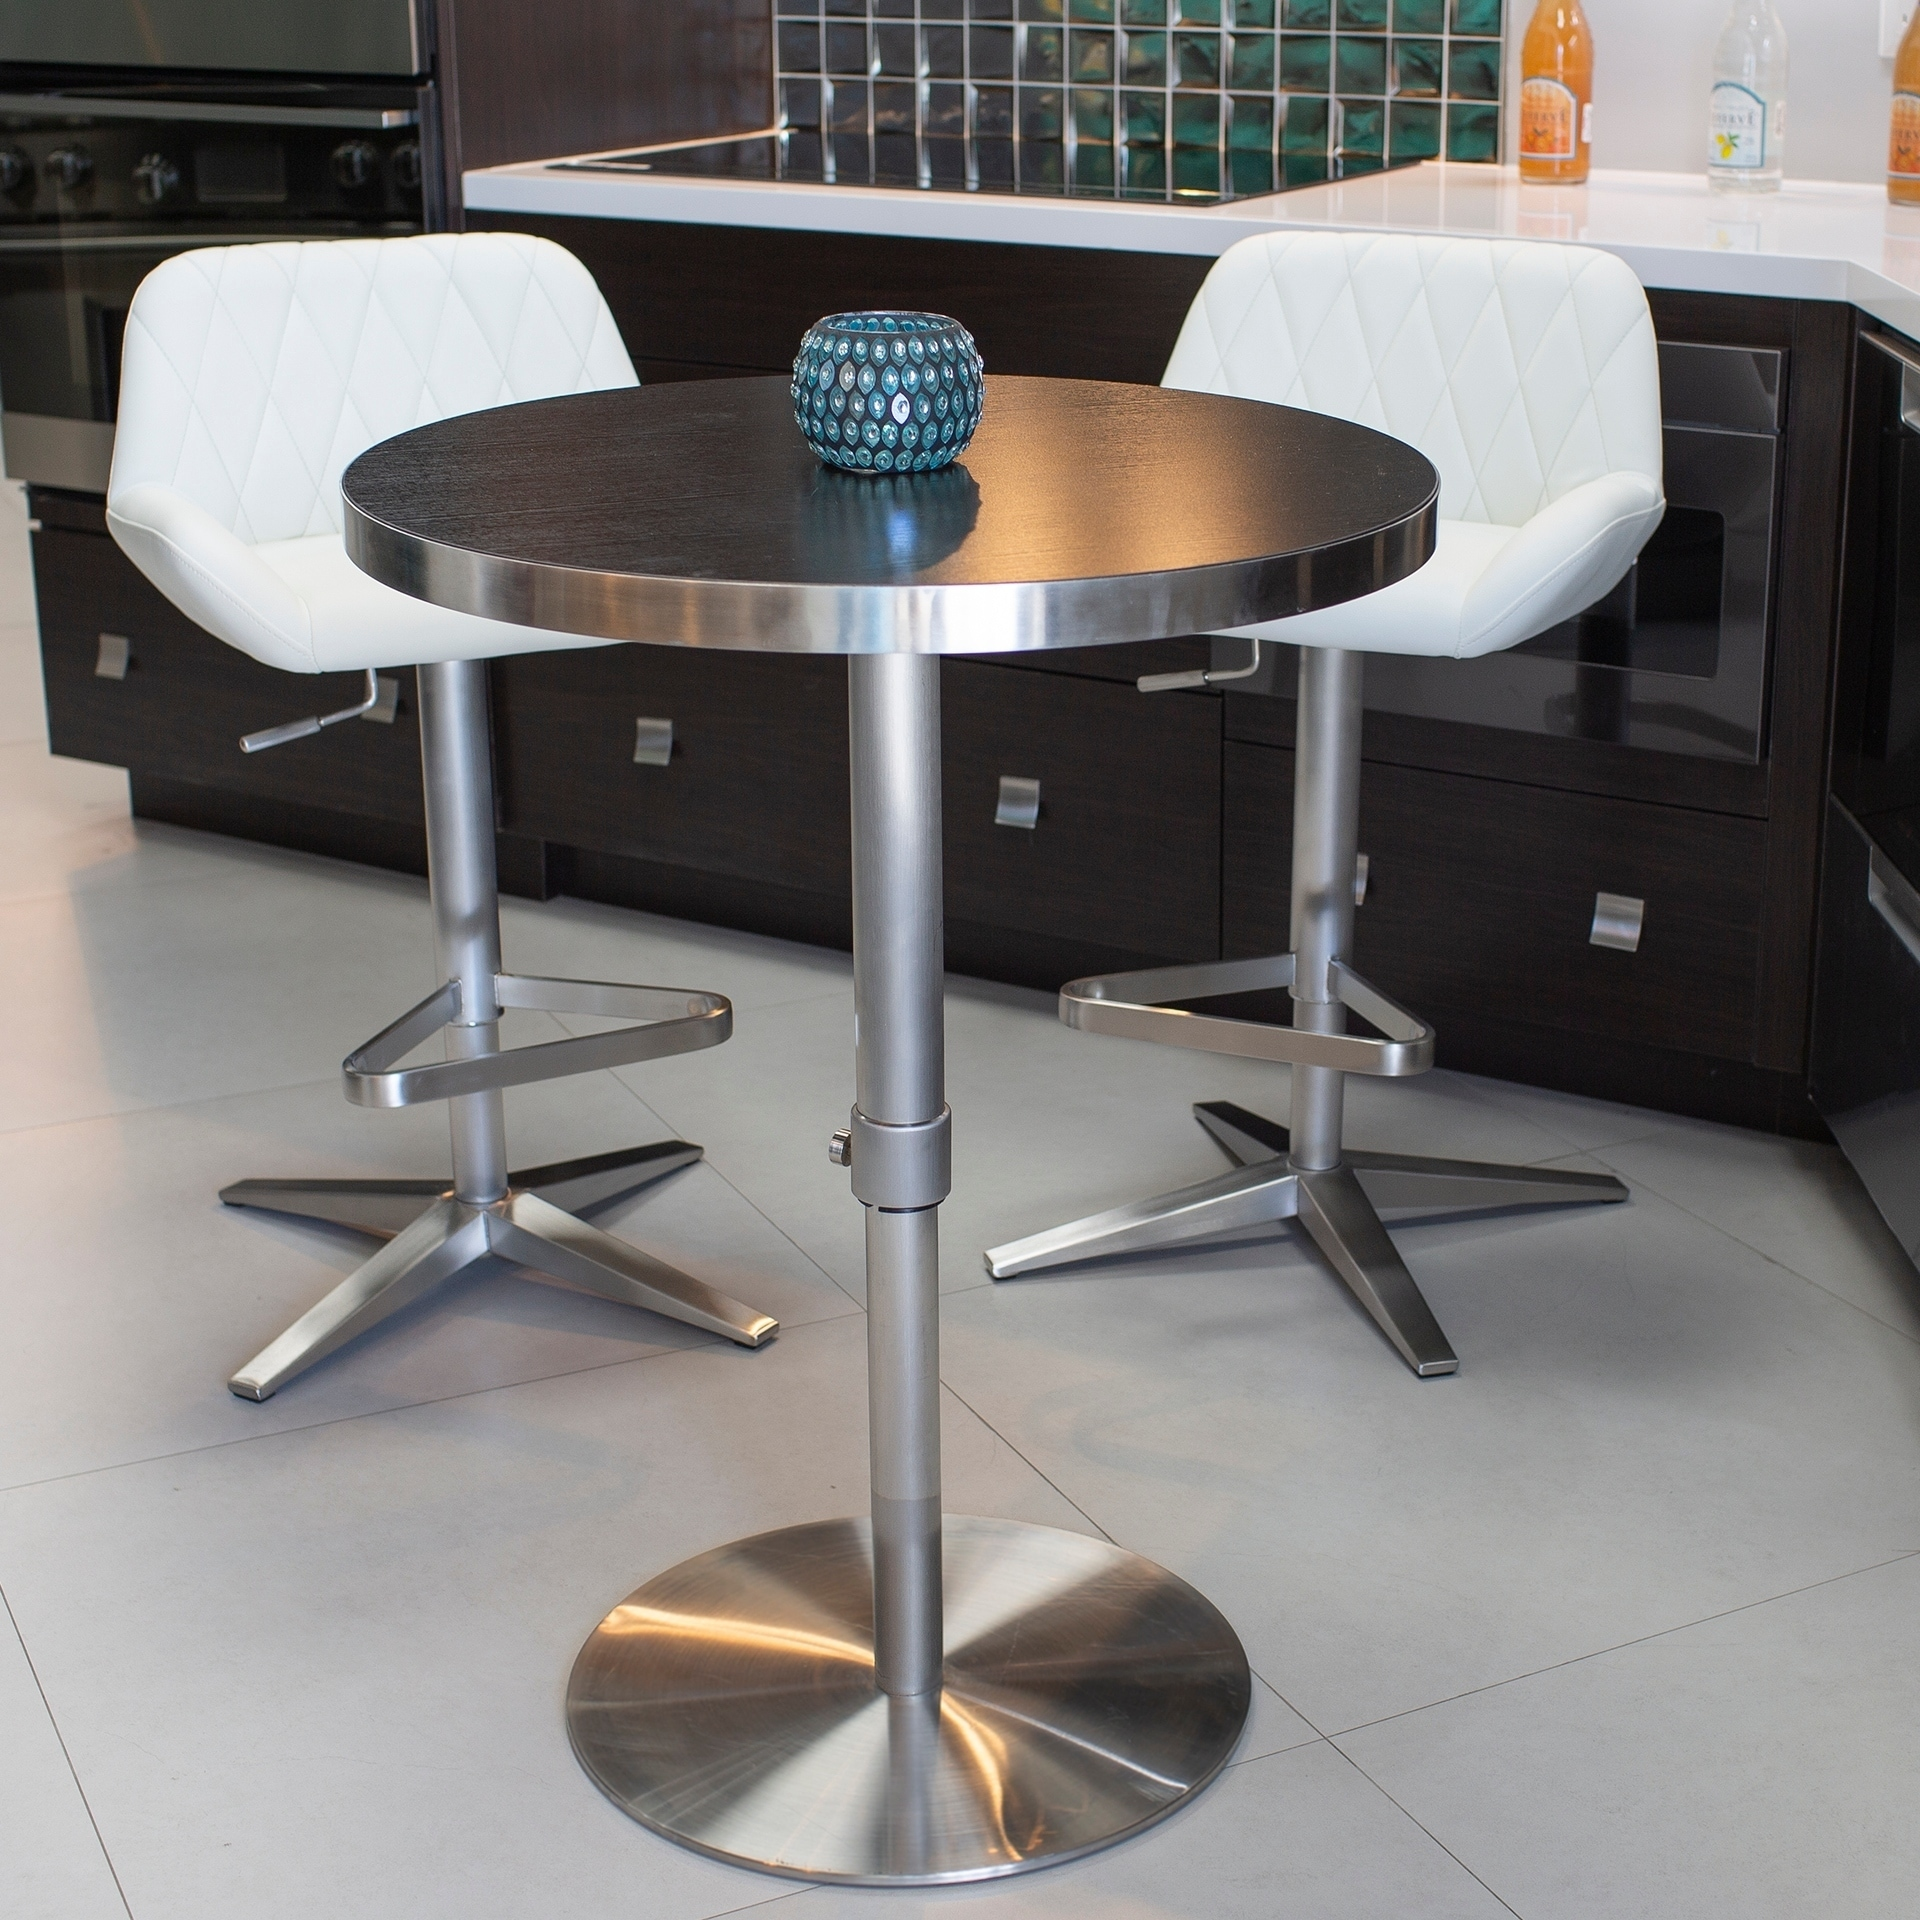 Adjustable Height Round Table.Mix 26 36 Inch Adjustable Height Round Espresso Wood Melamine Veneer Brushed Stainless Steel Pub Table With Round Slab Base